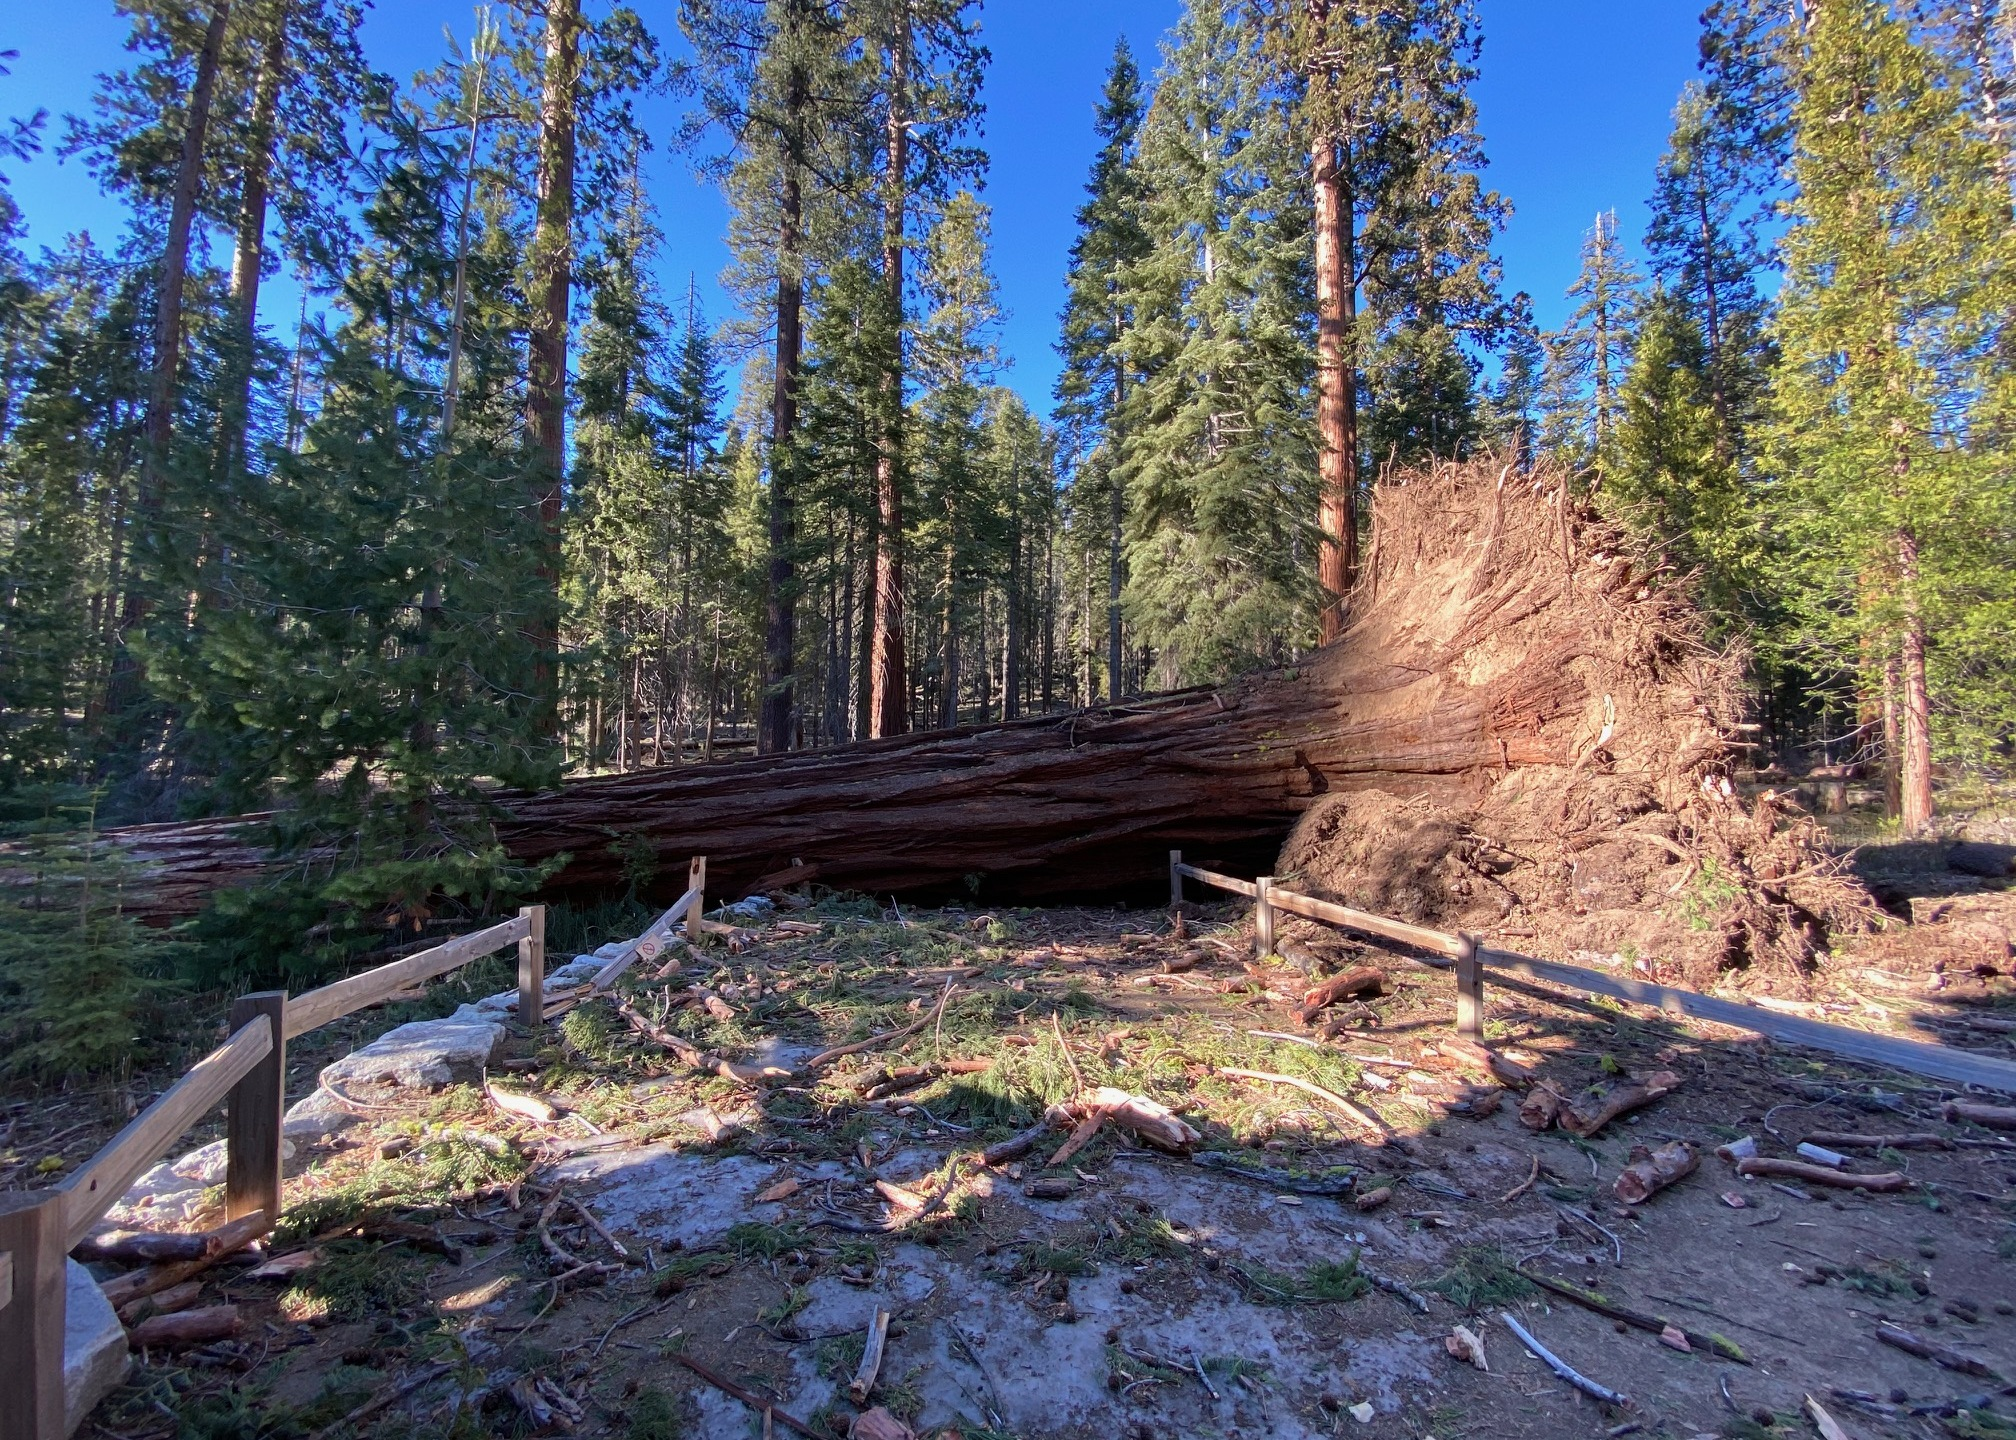 The Yosemite National Park twitter account shared this photo on Jan. 21, 2020, showing damage from high winds.